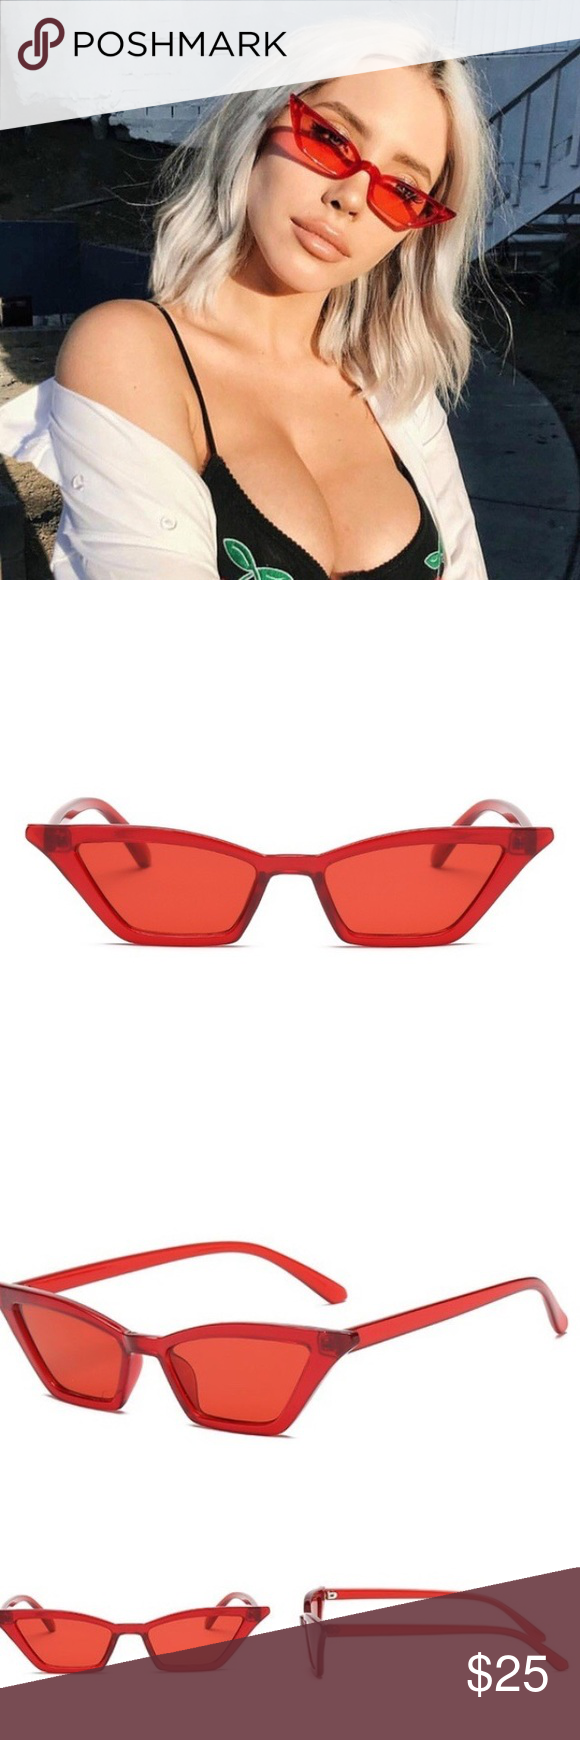 a89b92339f5f6 ️Vintage red tiny cat eye sunglasses Brand new! trendy tiny red cat eye  sunglasses Tiny frames. Red. Great for spring or summer. Vintage style.